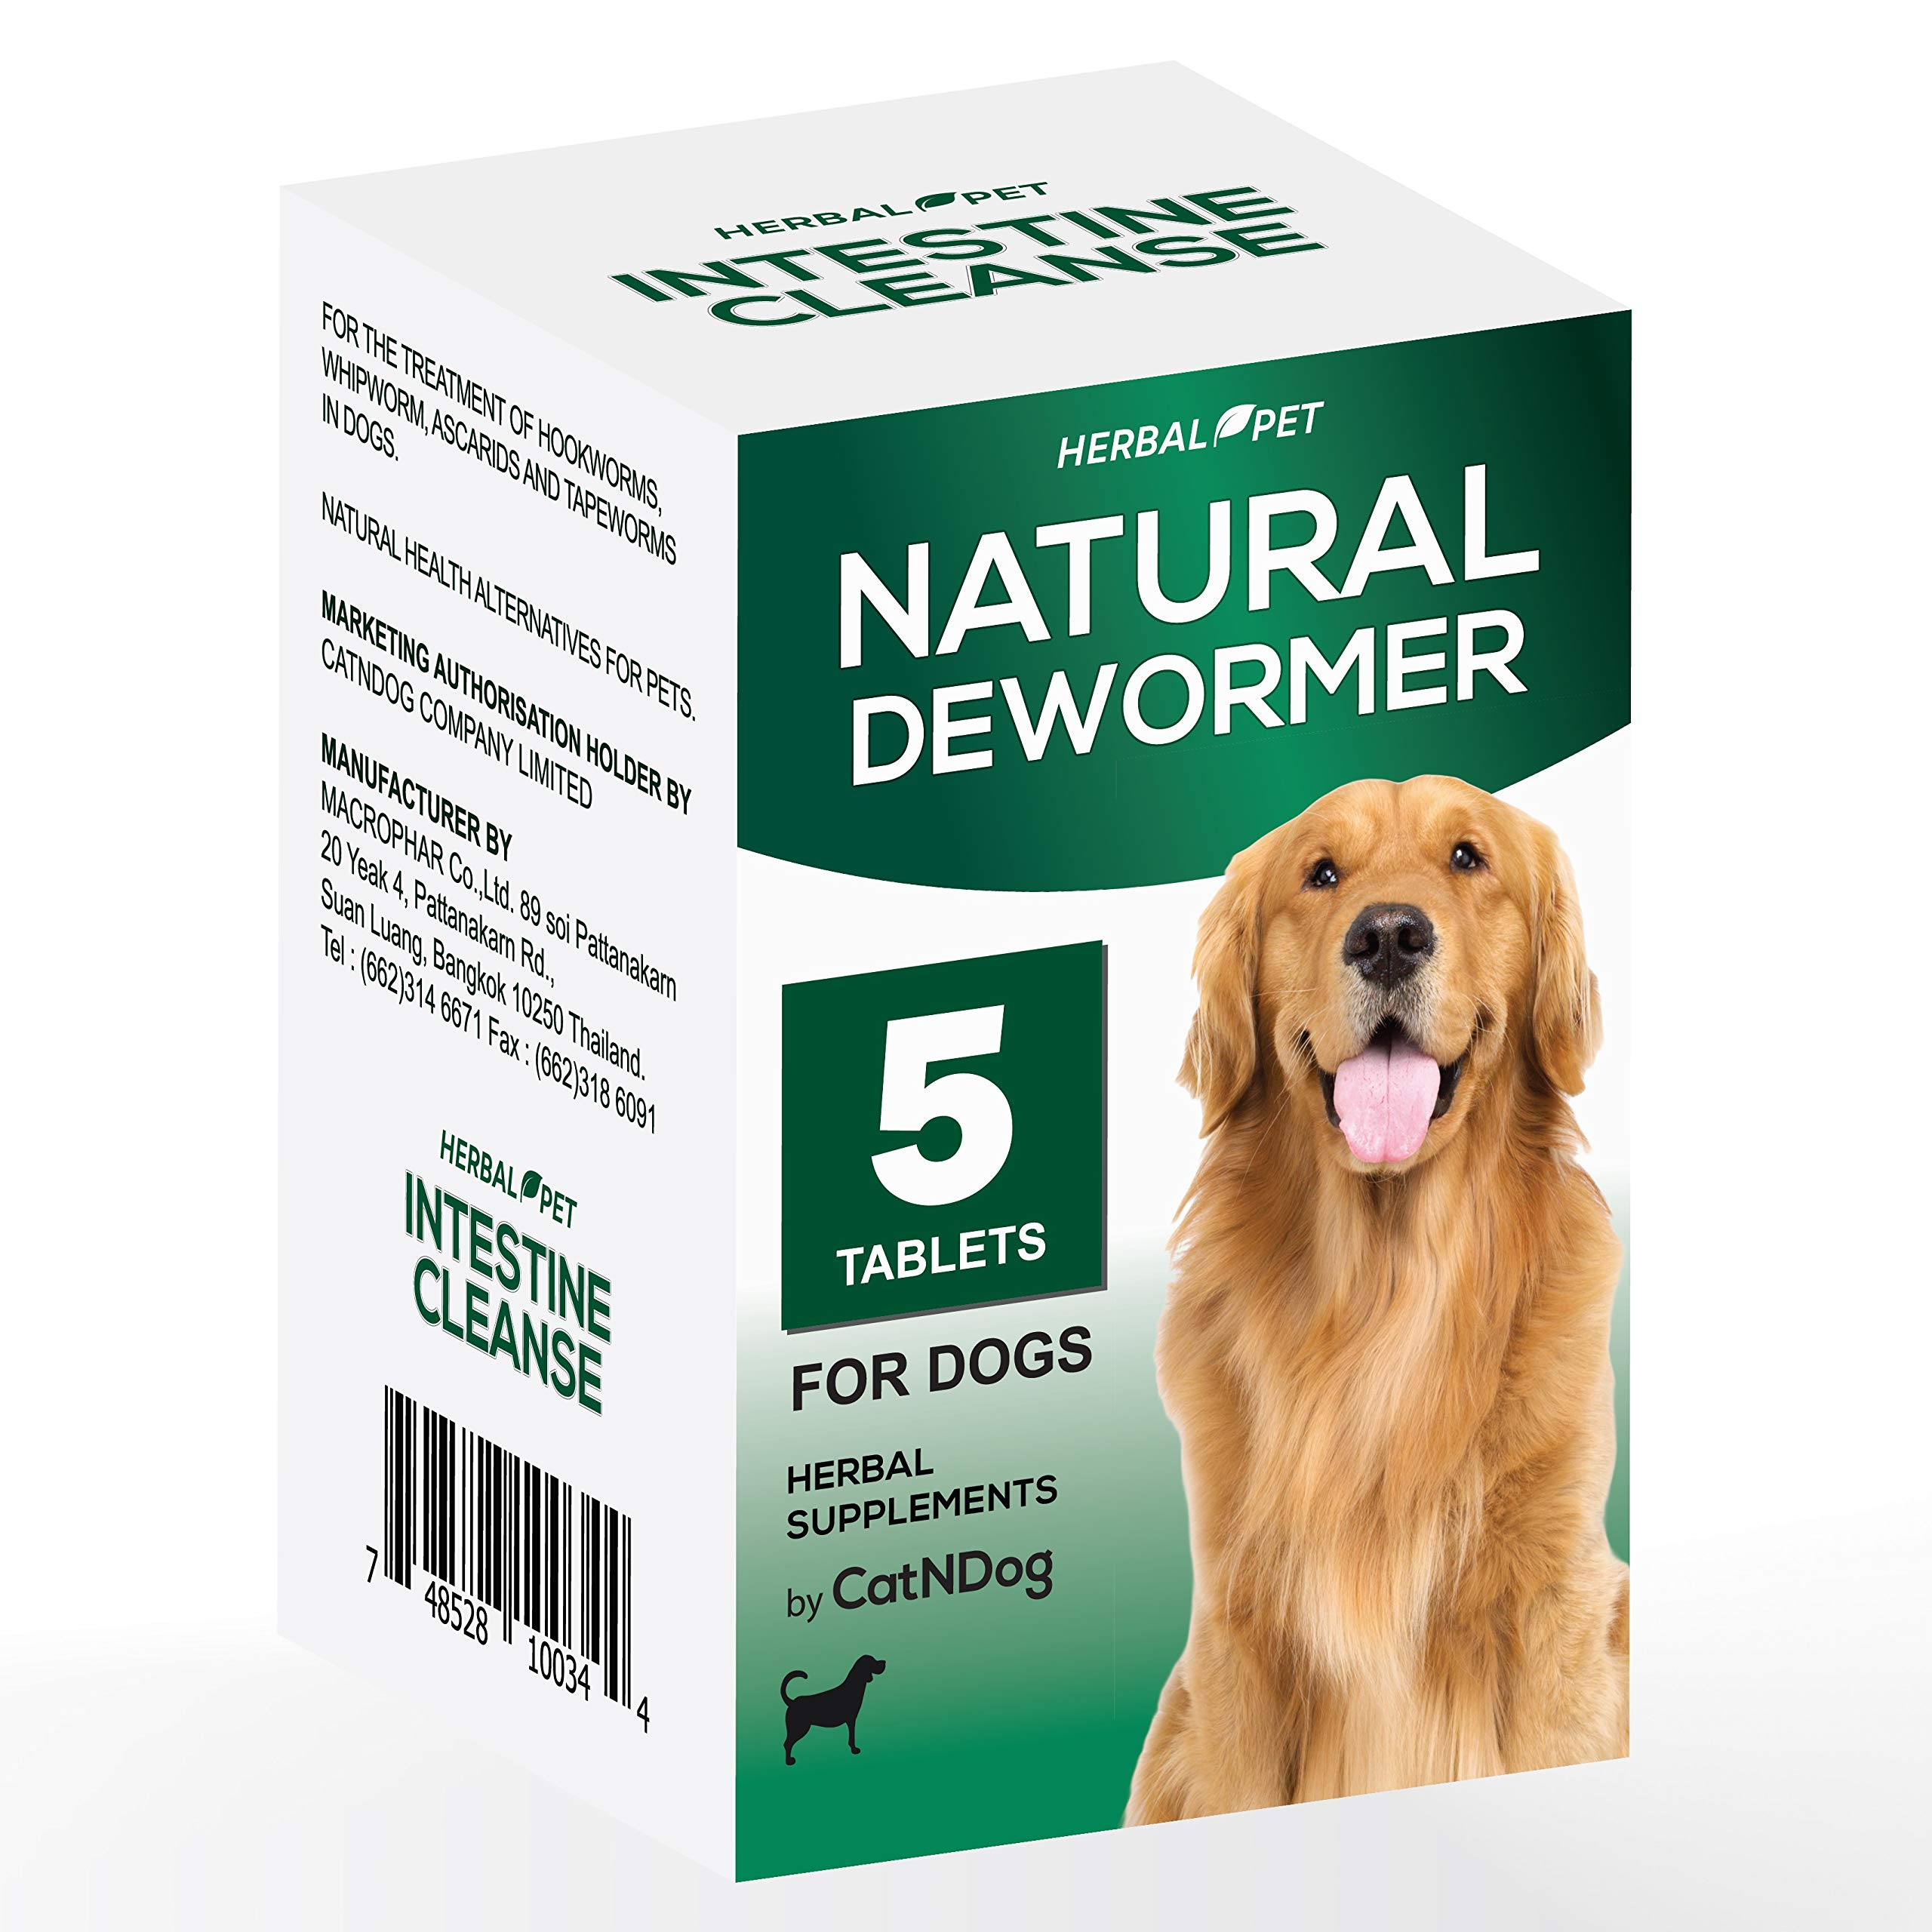 HERBALPET 8in1 Health Supplements | Natural Dog Dewormer Alternative | Intestinal Cleanse | Works for Puppy, Small, Medium and Large Dogs | 5 Tablets | One-time Treatment by HERBALPET